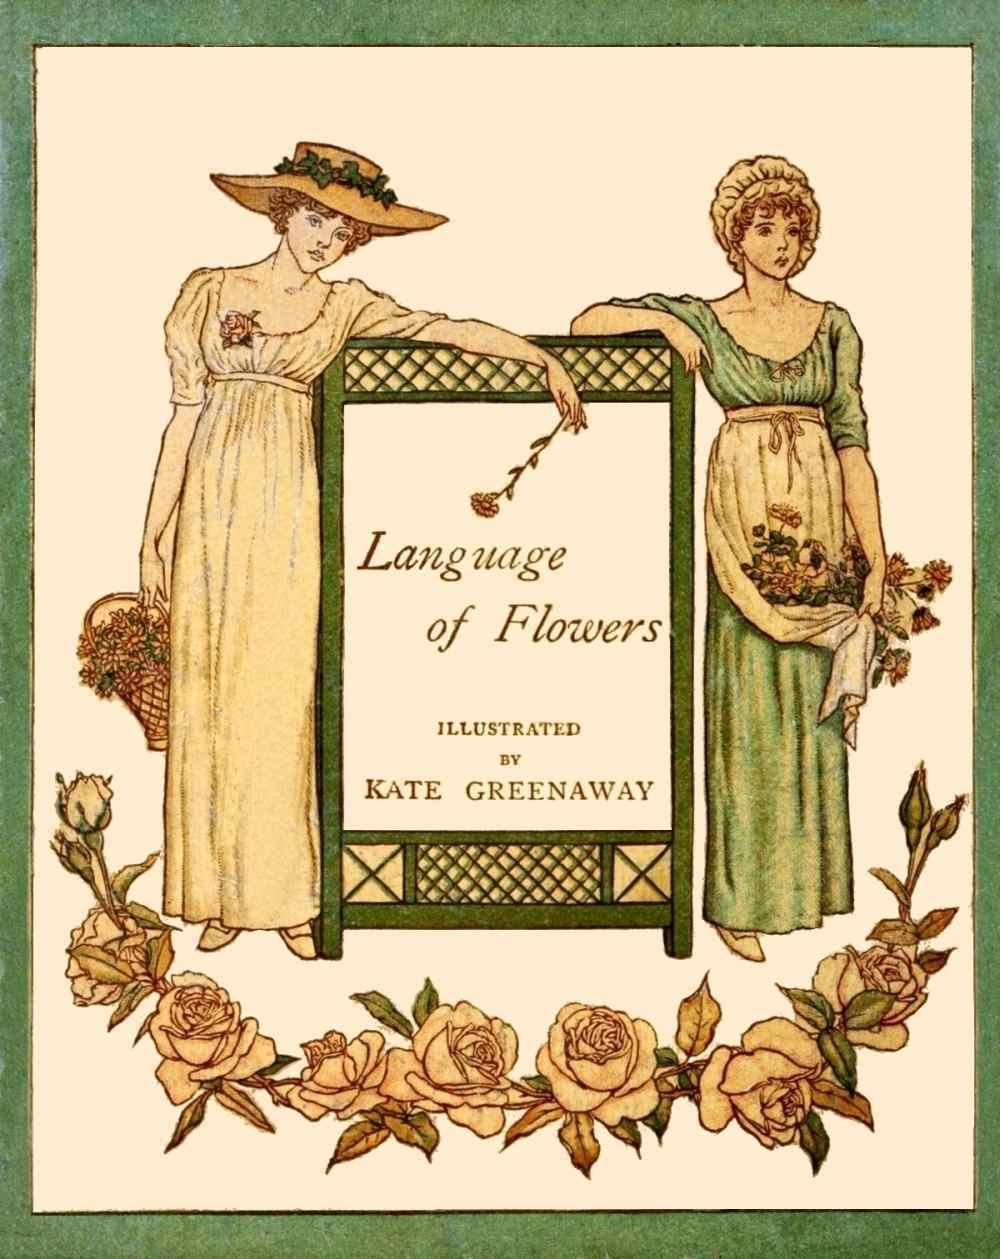 The project gutenberg ebook of language of flowers by kate greenaway language of flowers image not available izmirmasajfo